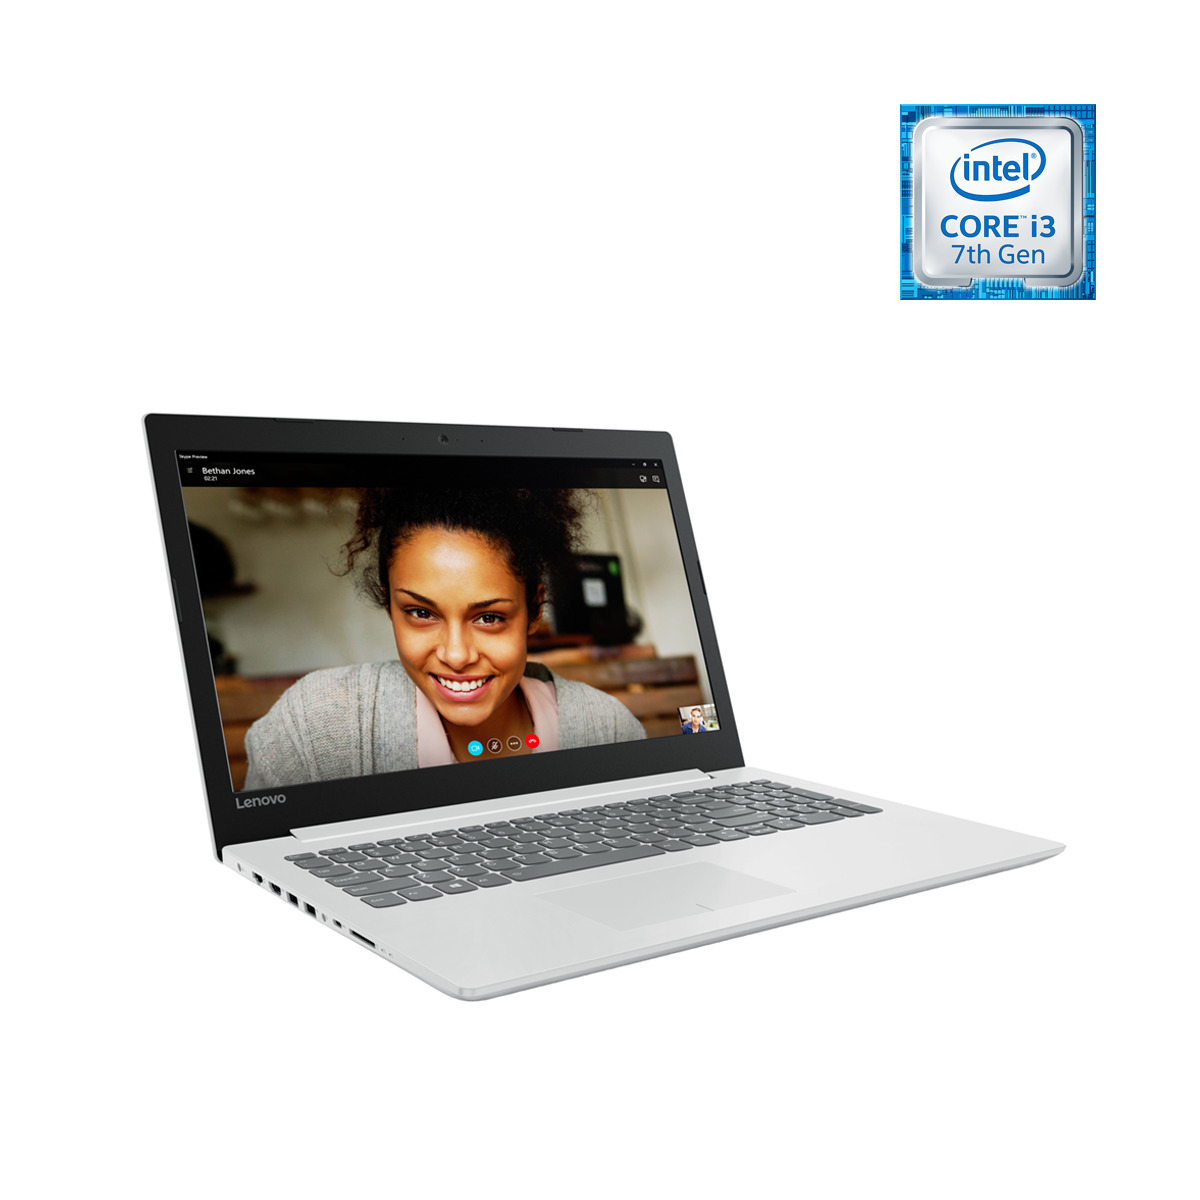 lenovo ideapad 320-15iap usb driver windows 7 64 bit